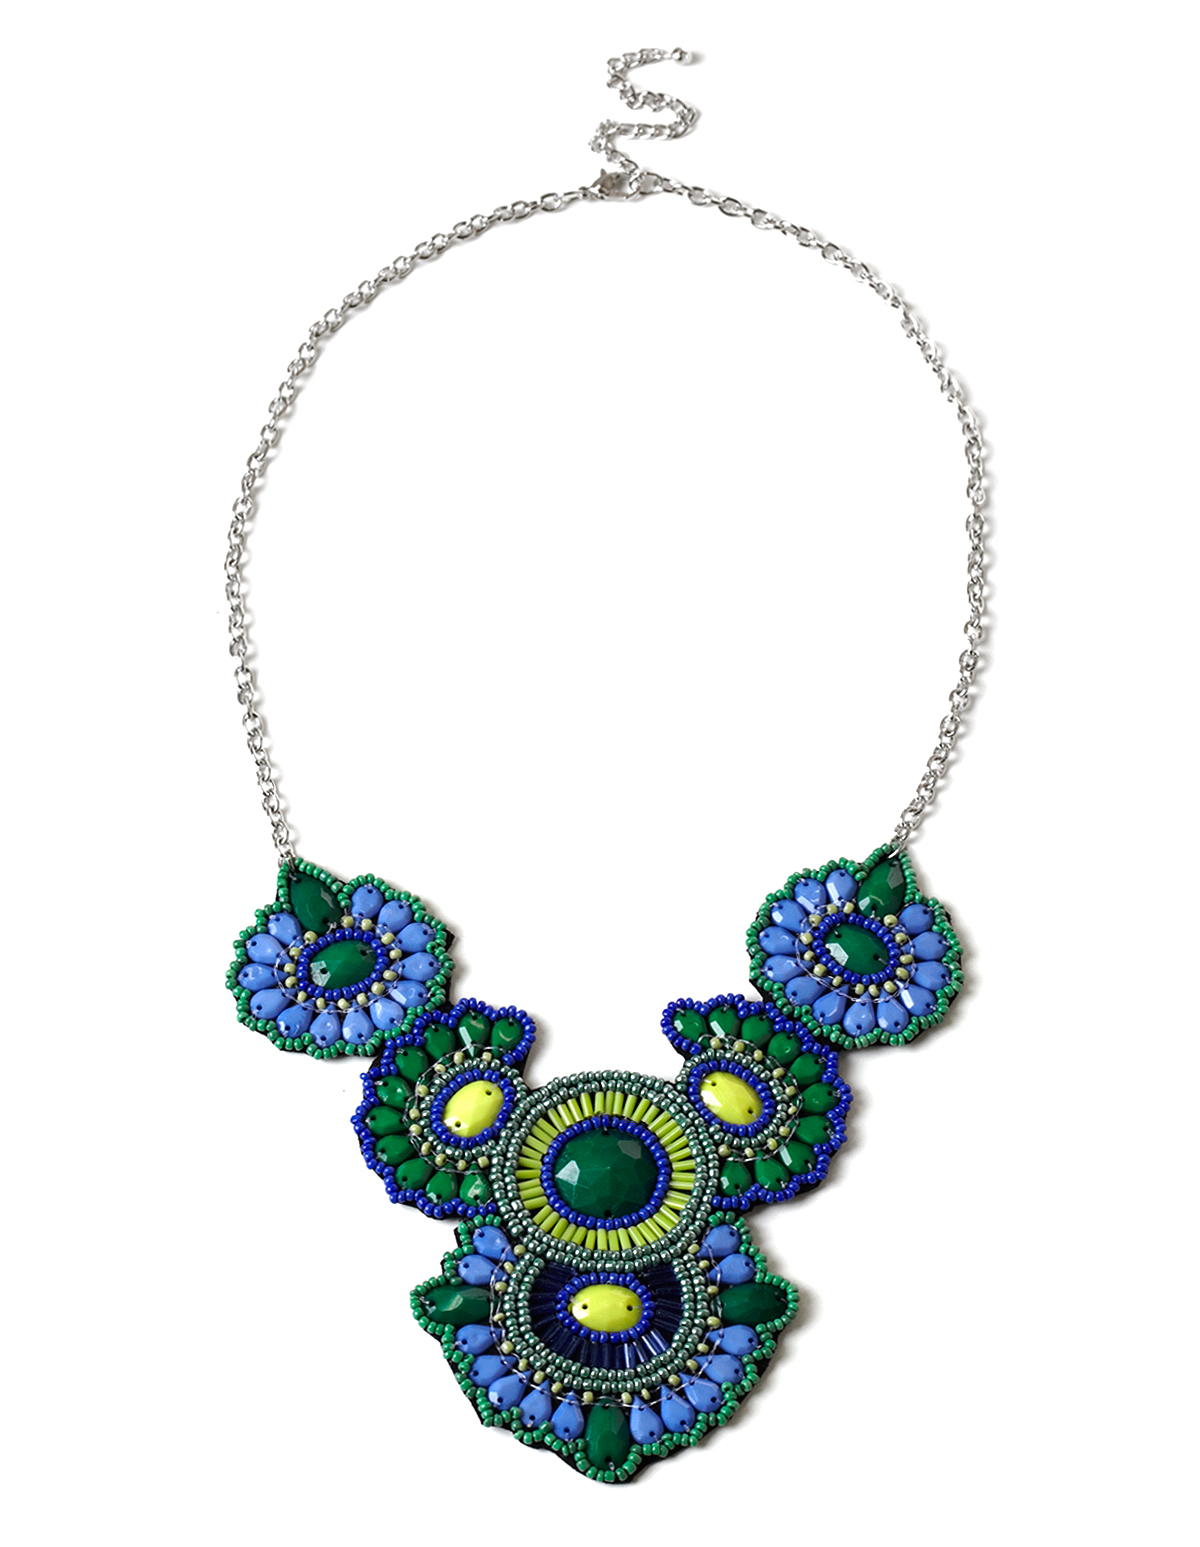 jewelry pointe necklace virtual library of sandi collections green and blue